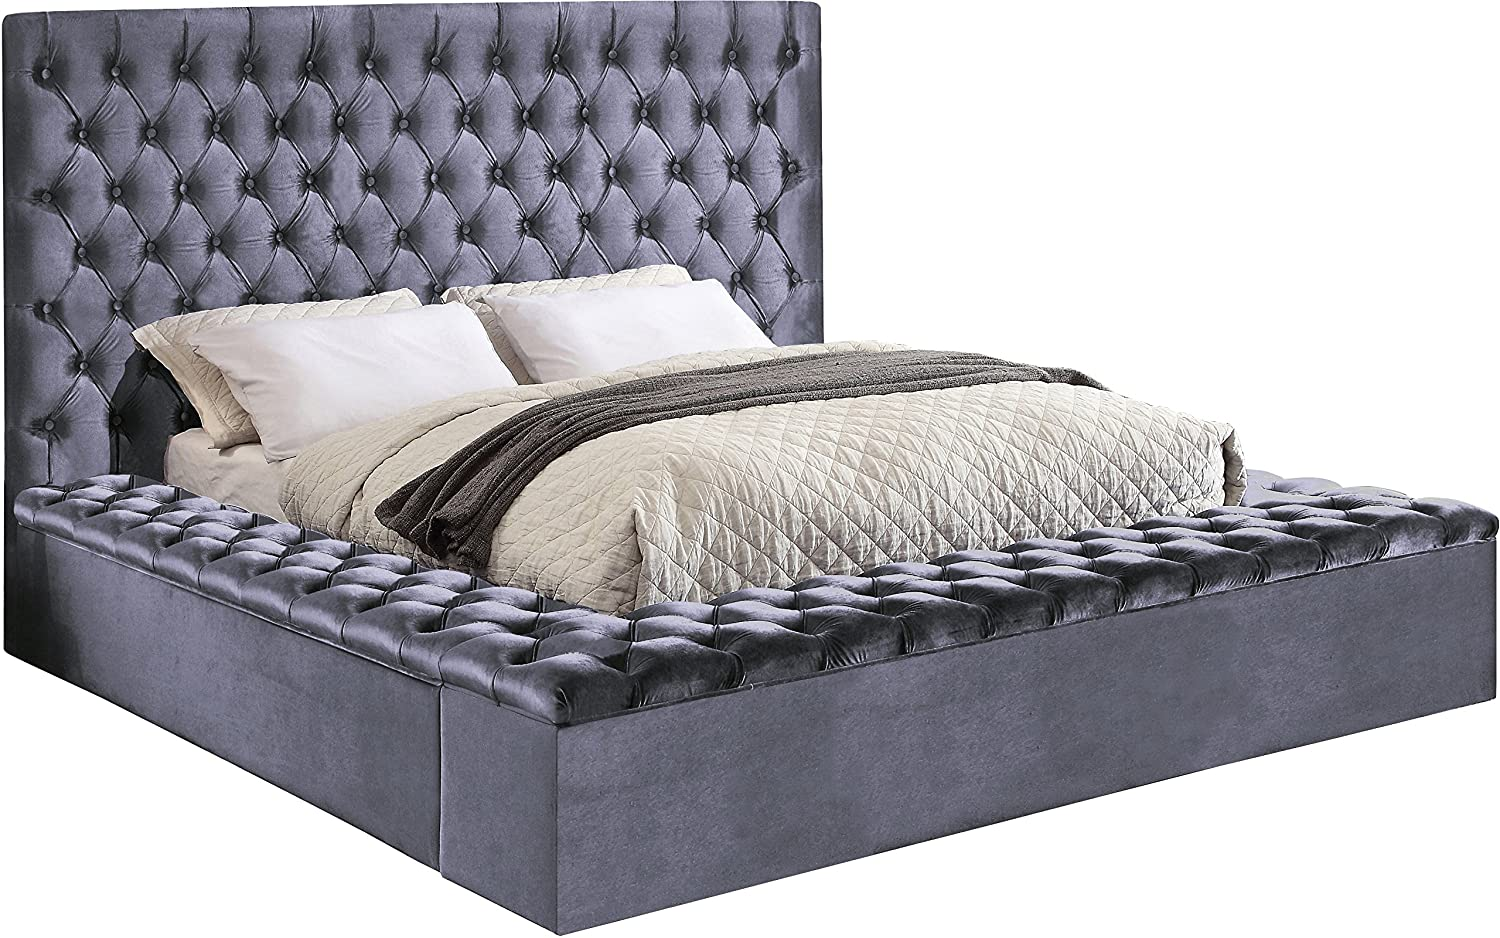 Charmant Amazon.com: Meridian Furniture Q Blissgrey Q Bliss Velvet Bed, Queen, Grey:  Kitchen U0026 Dining